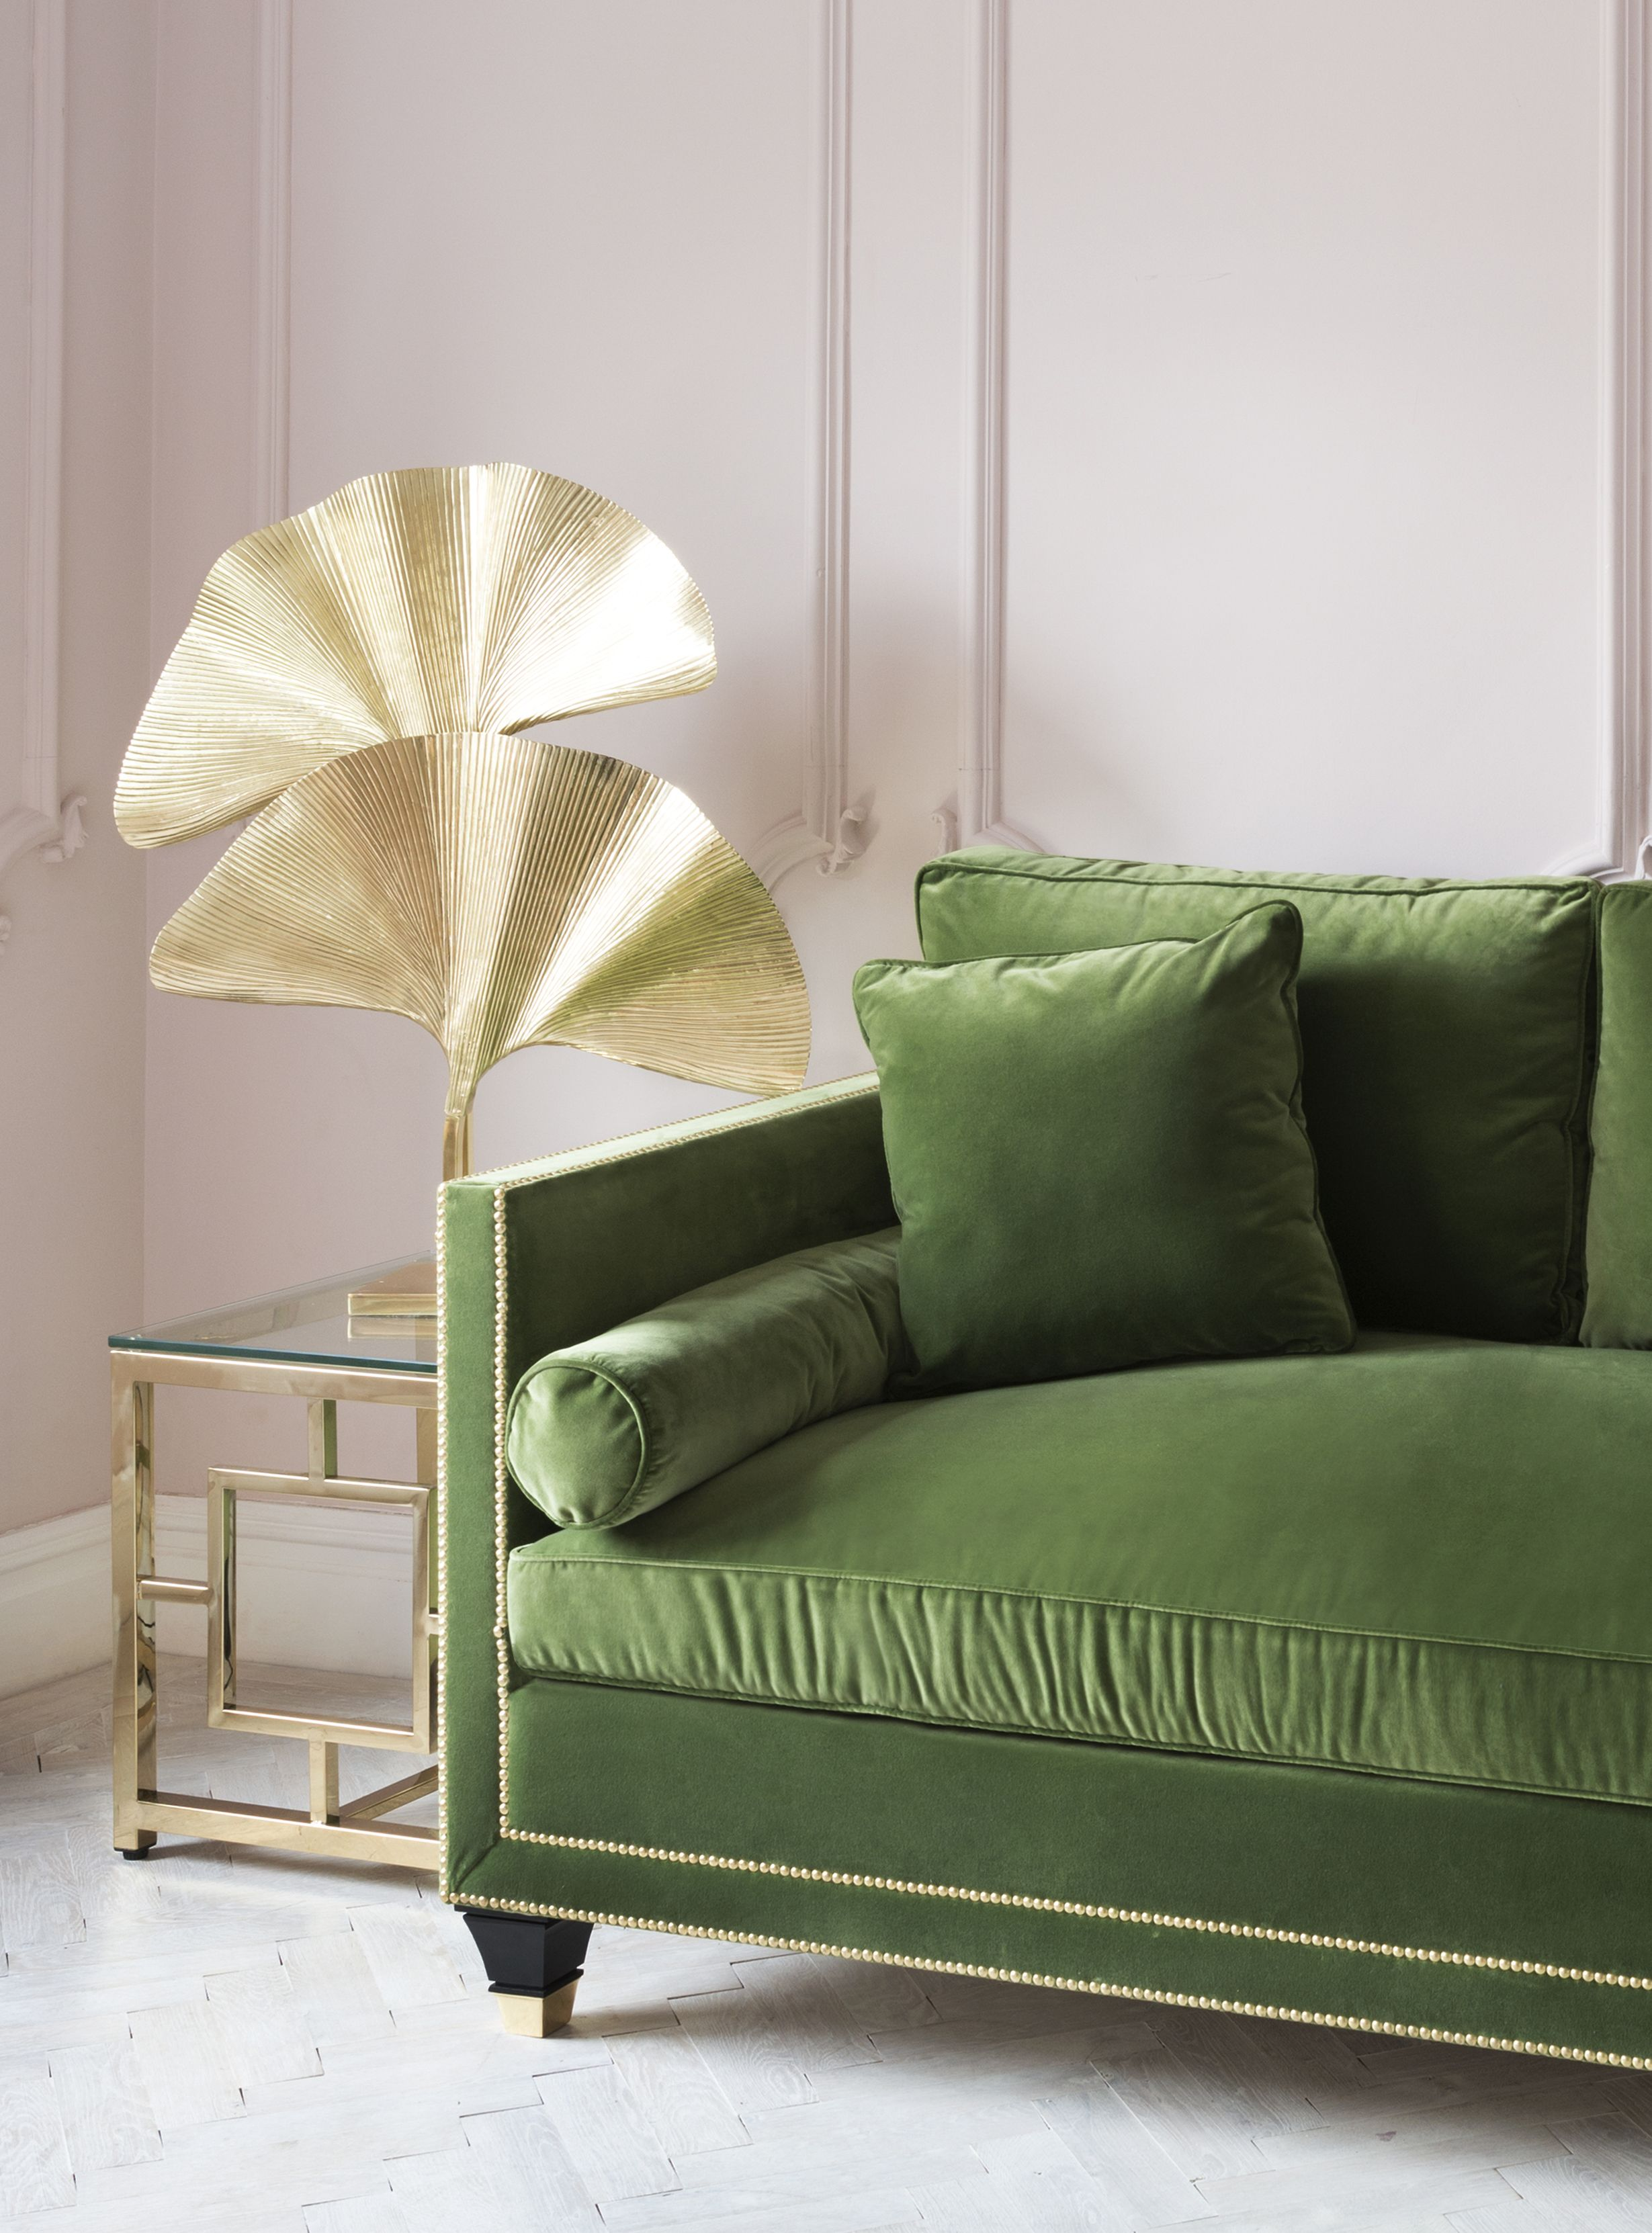 The amazing eichholtz palmas gold table lamp next to the stunning hatfield sofa in green velvet that pink wall paint works beautifully